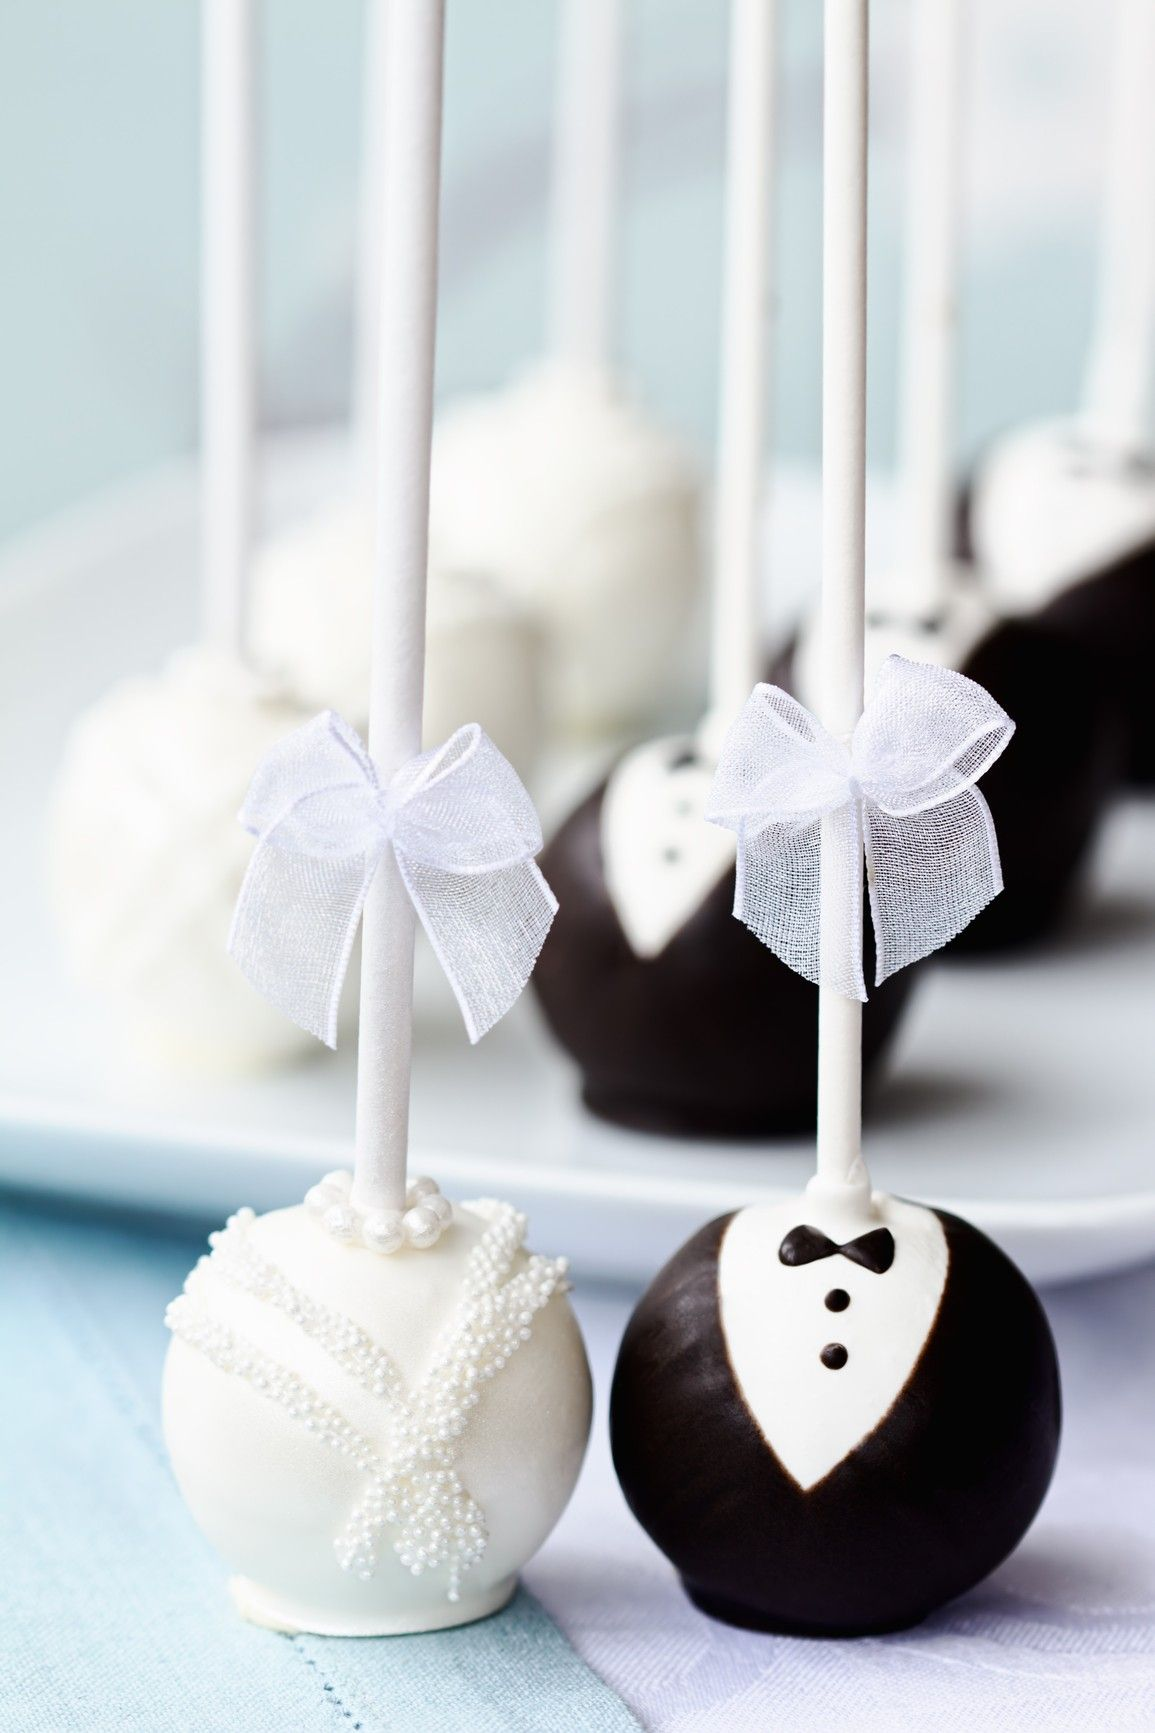 Cake Pops Hochzeit 10 Things You Need To Know About Cake Pops ...